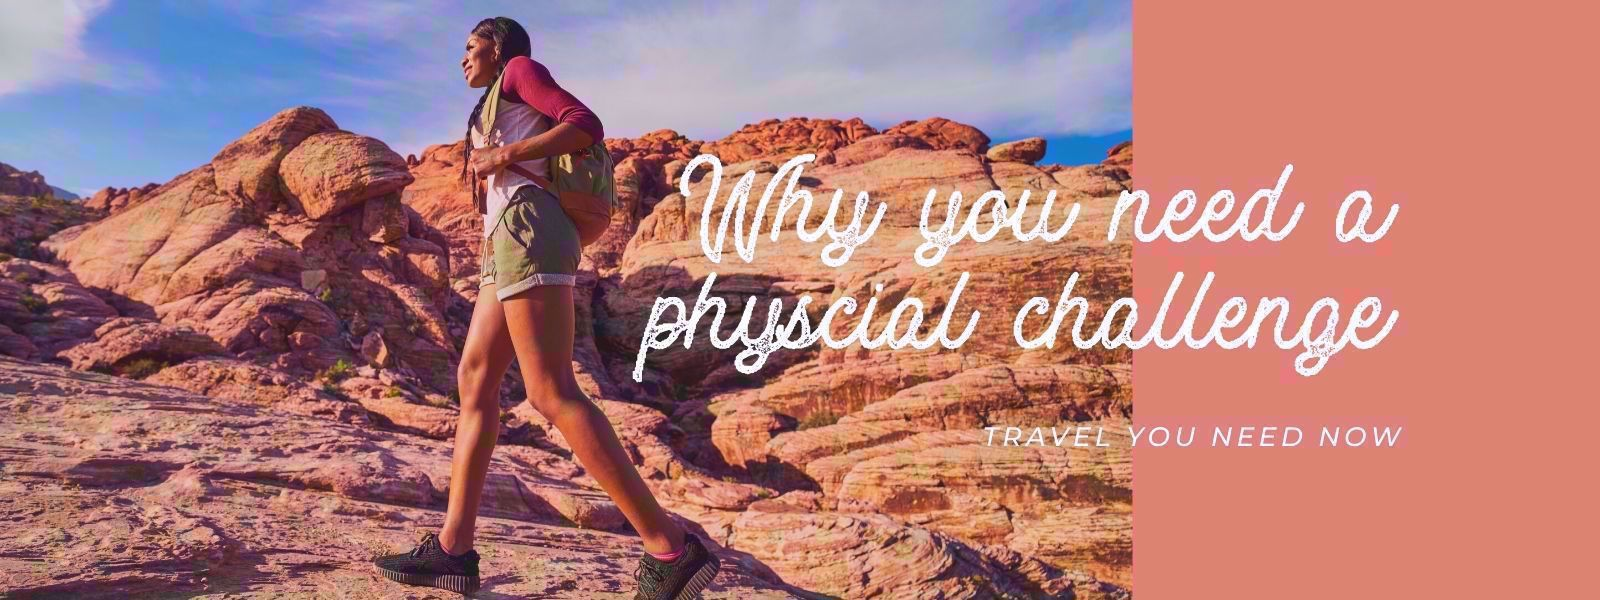 Travel You Need Now: A Physical Challenge